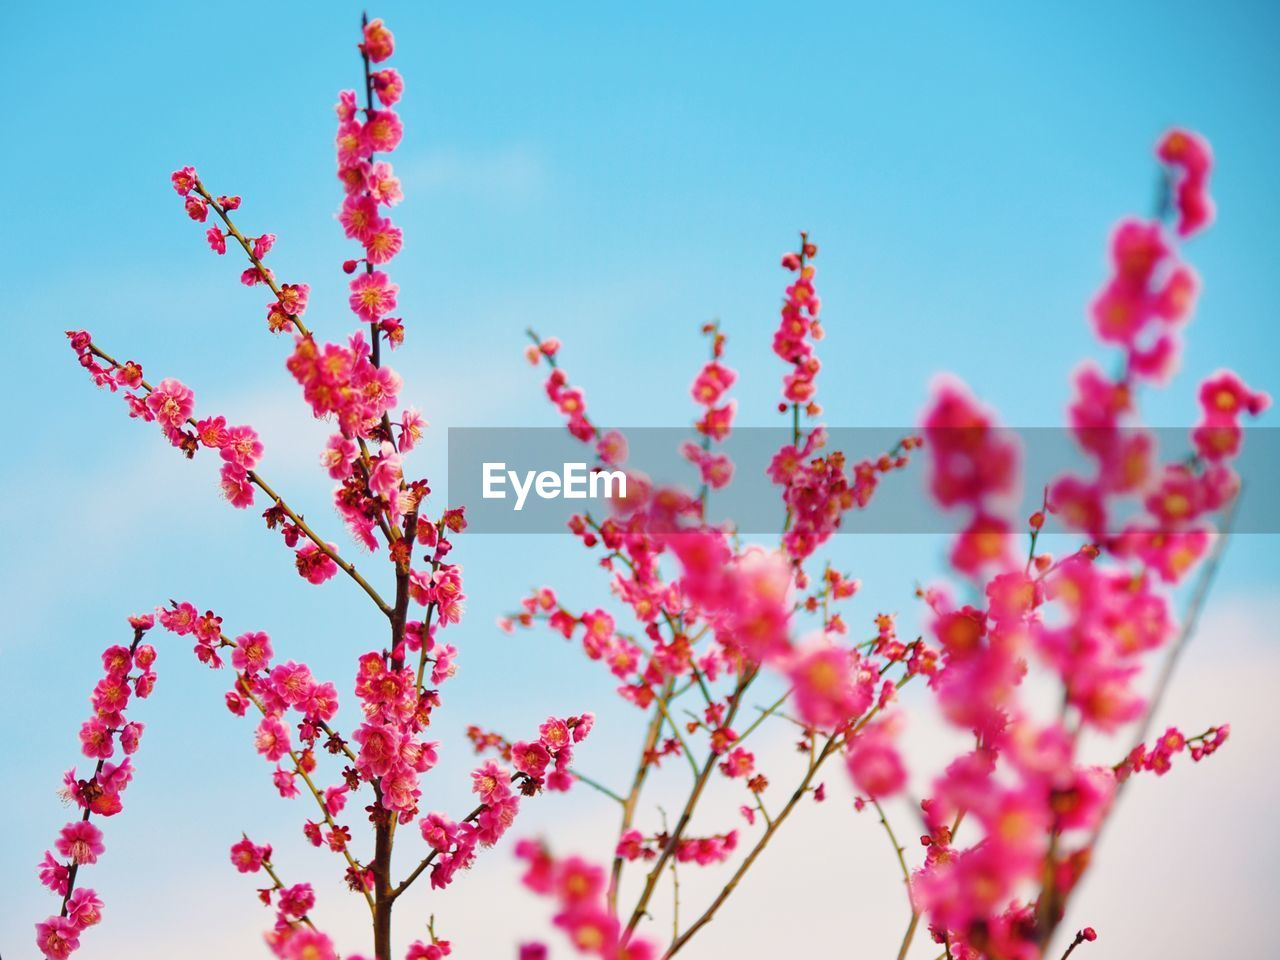 beauty in nature, plant, growth, sky, fragility, vulnerability, nature, flower, low angle view, flowering plant, freshness, no people, day, pink color, close-up, tranquility, blue, red, focus on foreground, selective focus, outdoors, cherry blossom